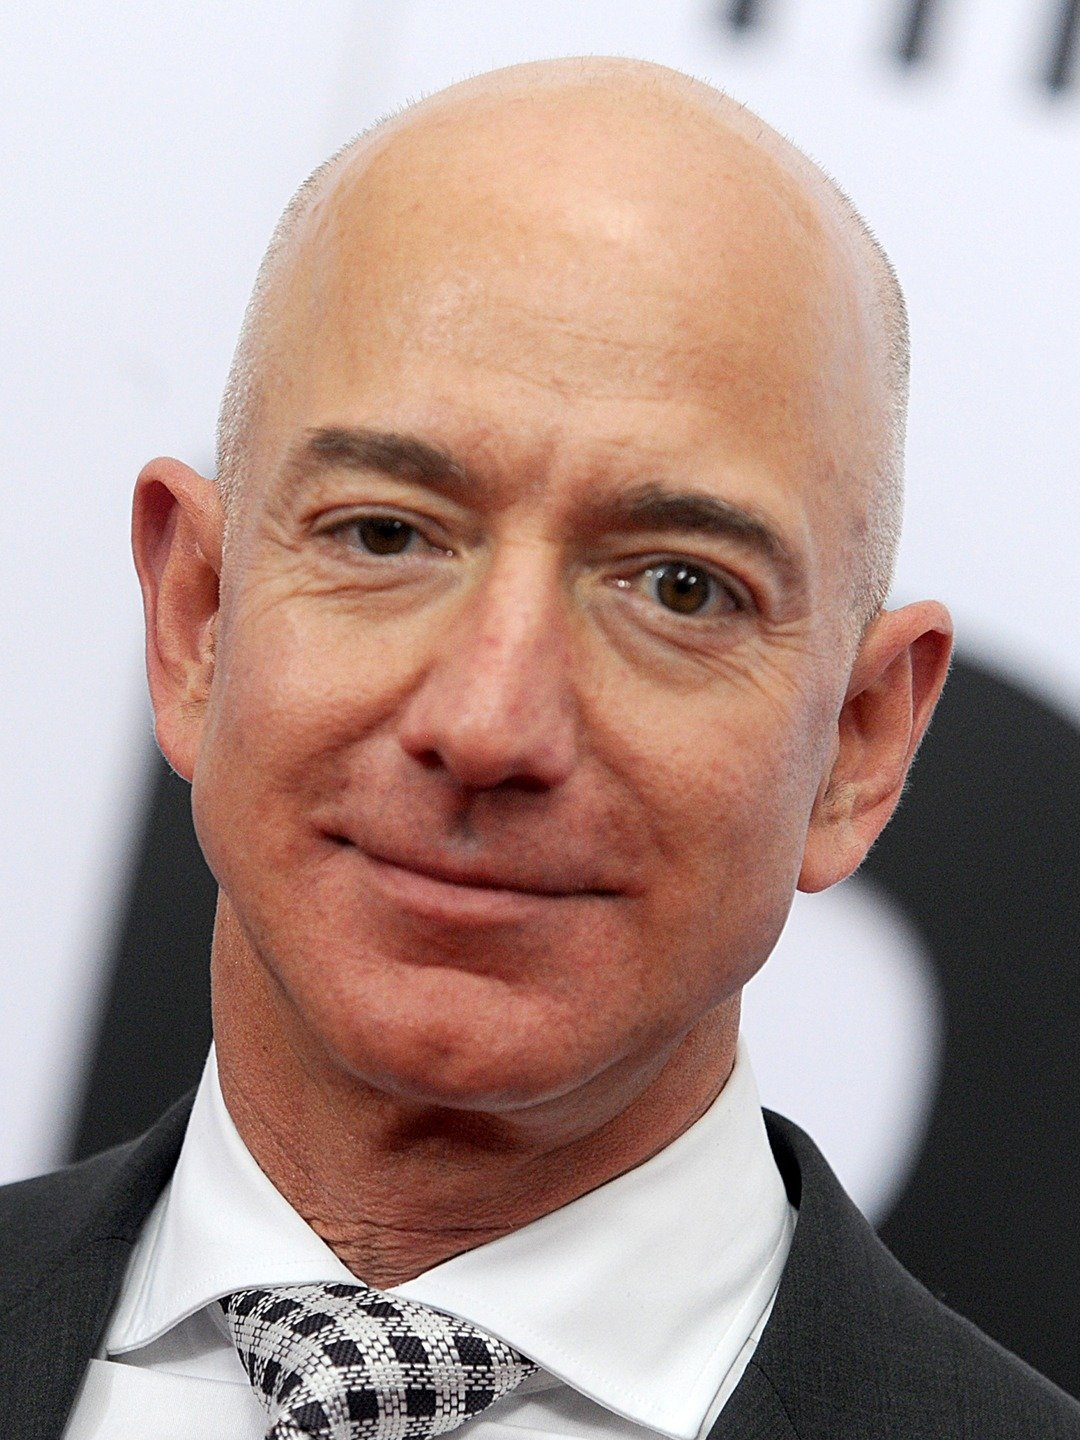 Jeff Bezos Is The 2017 Richest Man